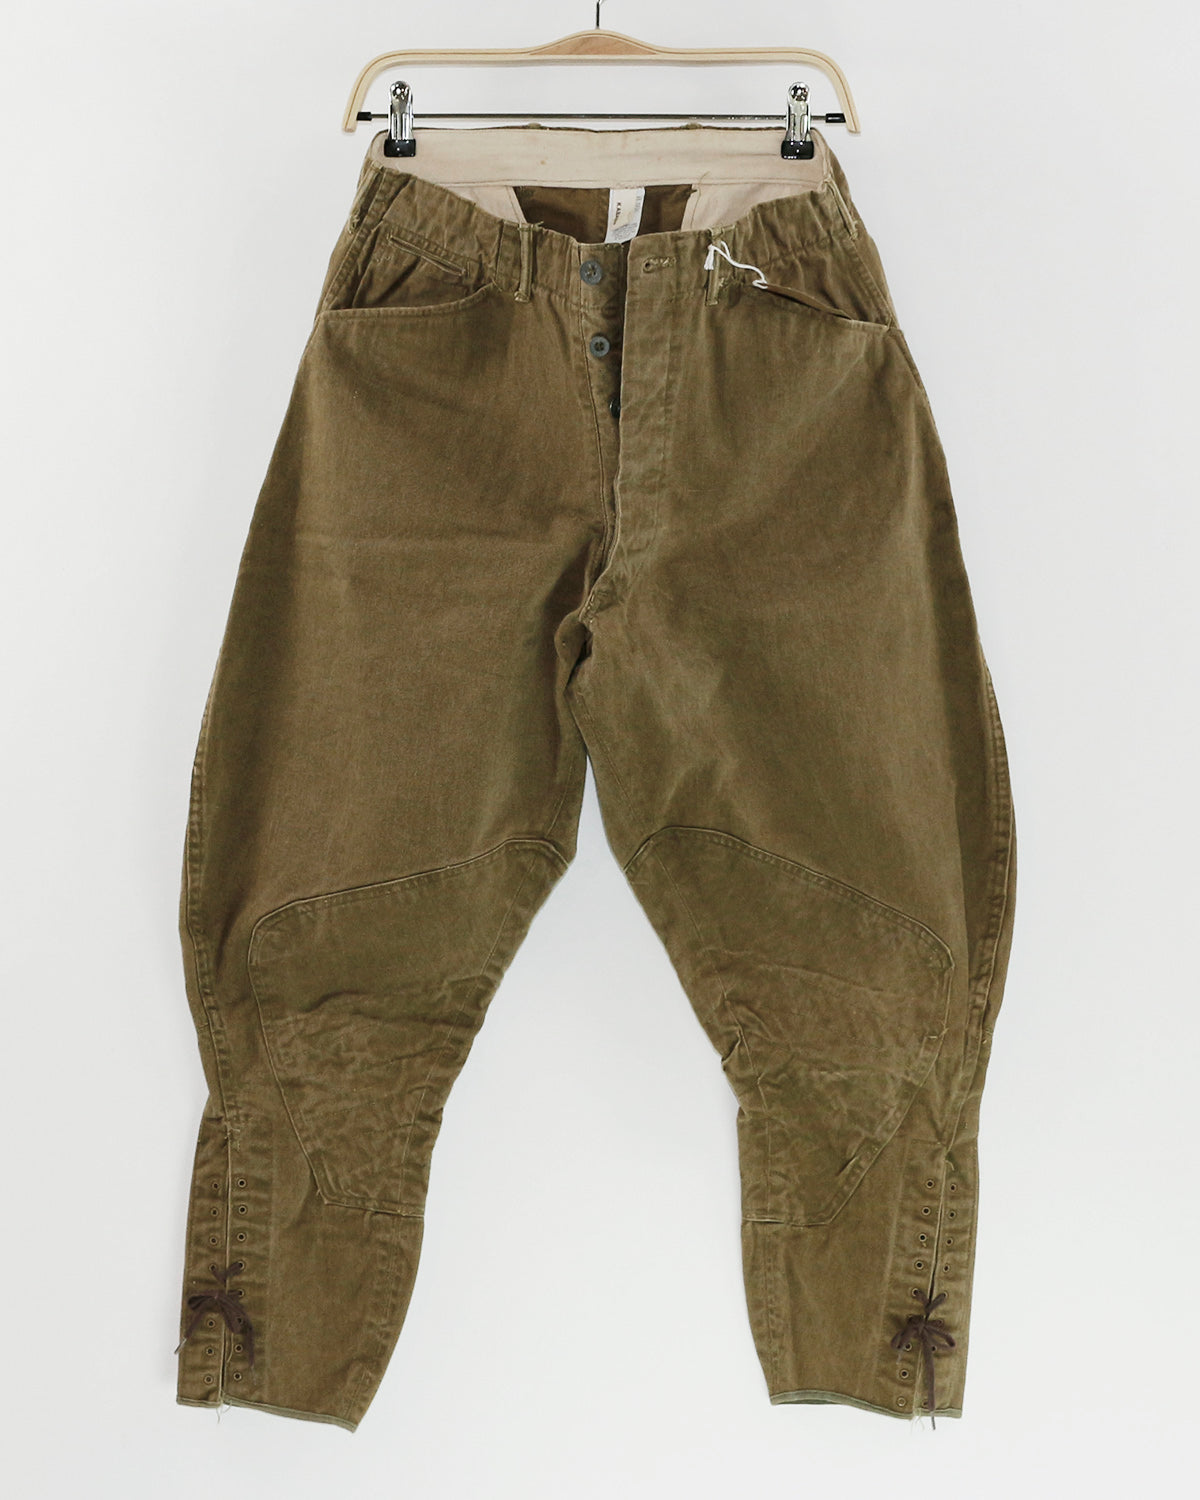 Vintage WWI US Army Breeches